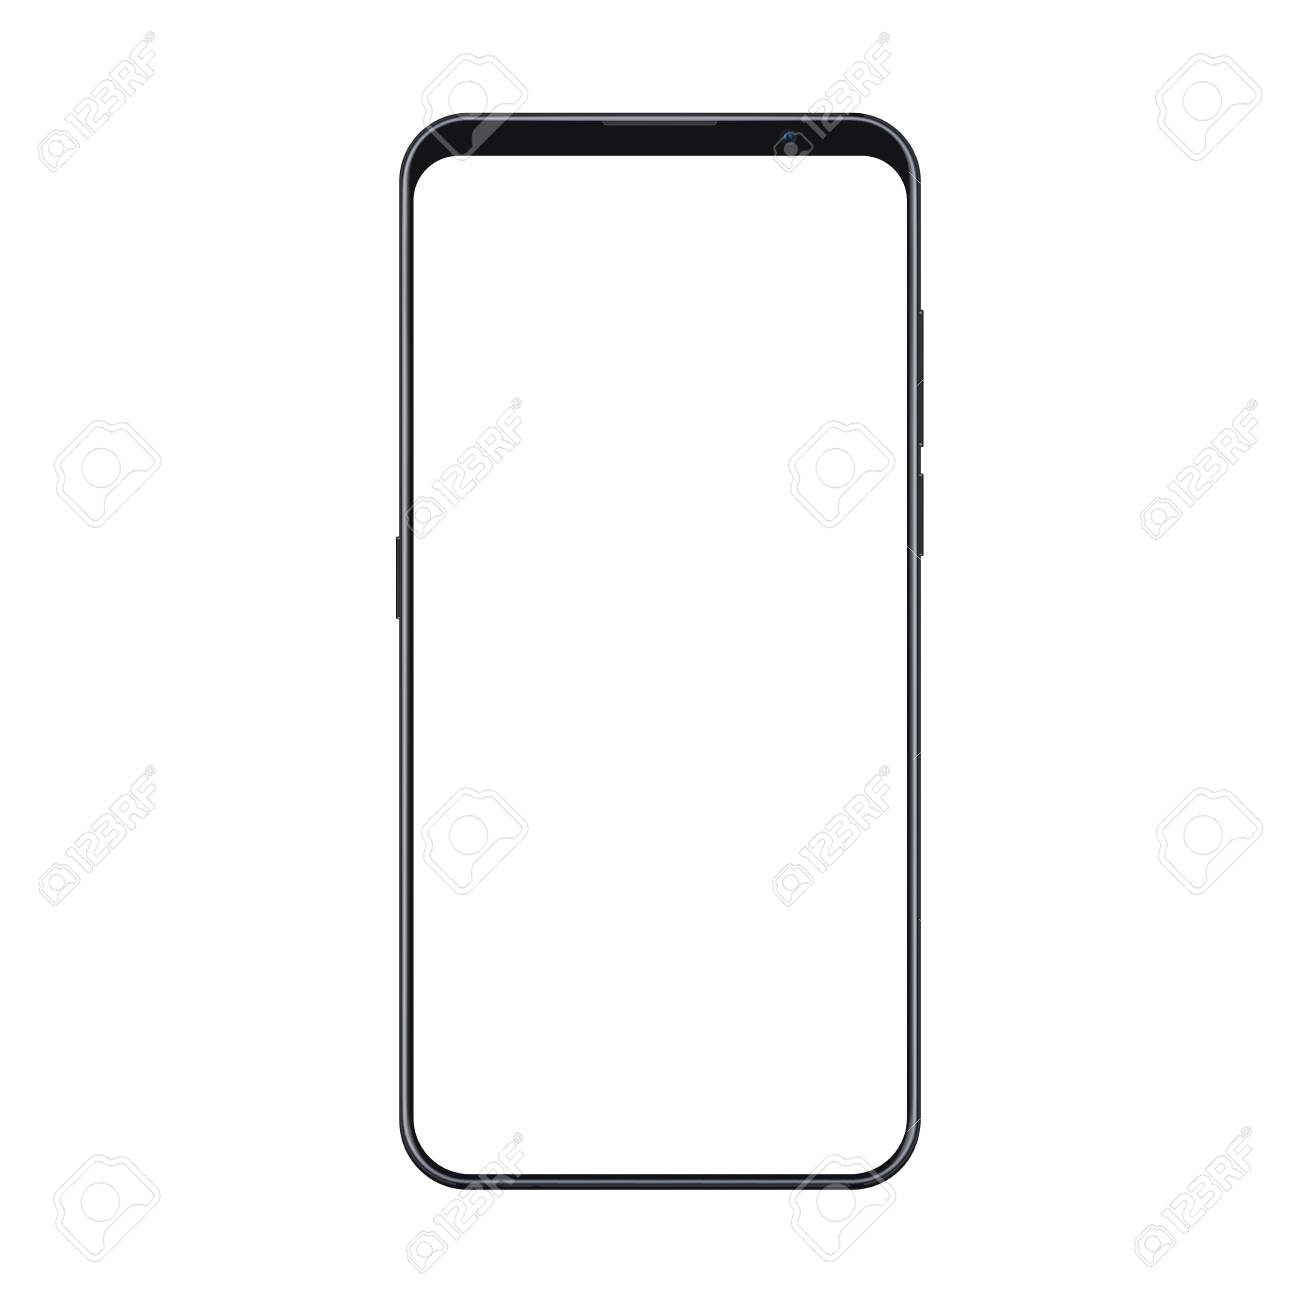 Realistic trendy smartphone mockup with thin frames and blank white screen isolated. Can be use for any user interface test or presentation. - 109271290